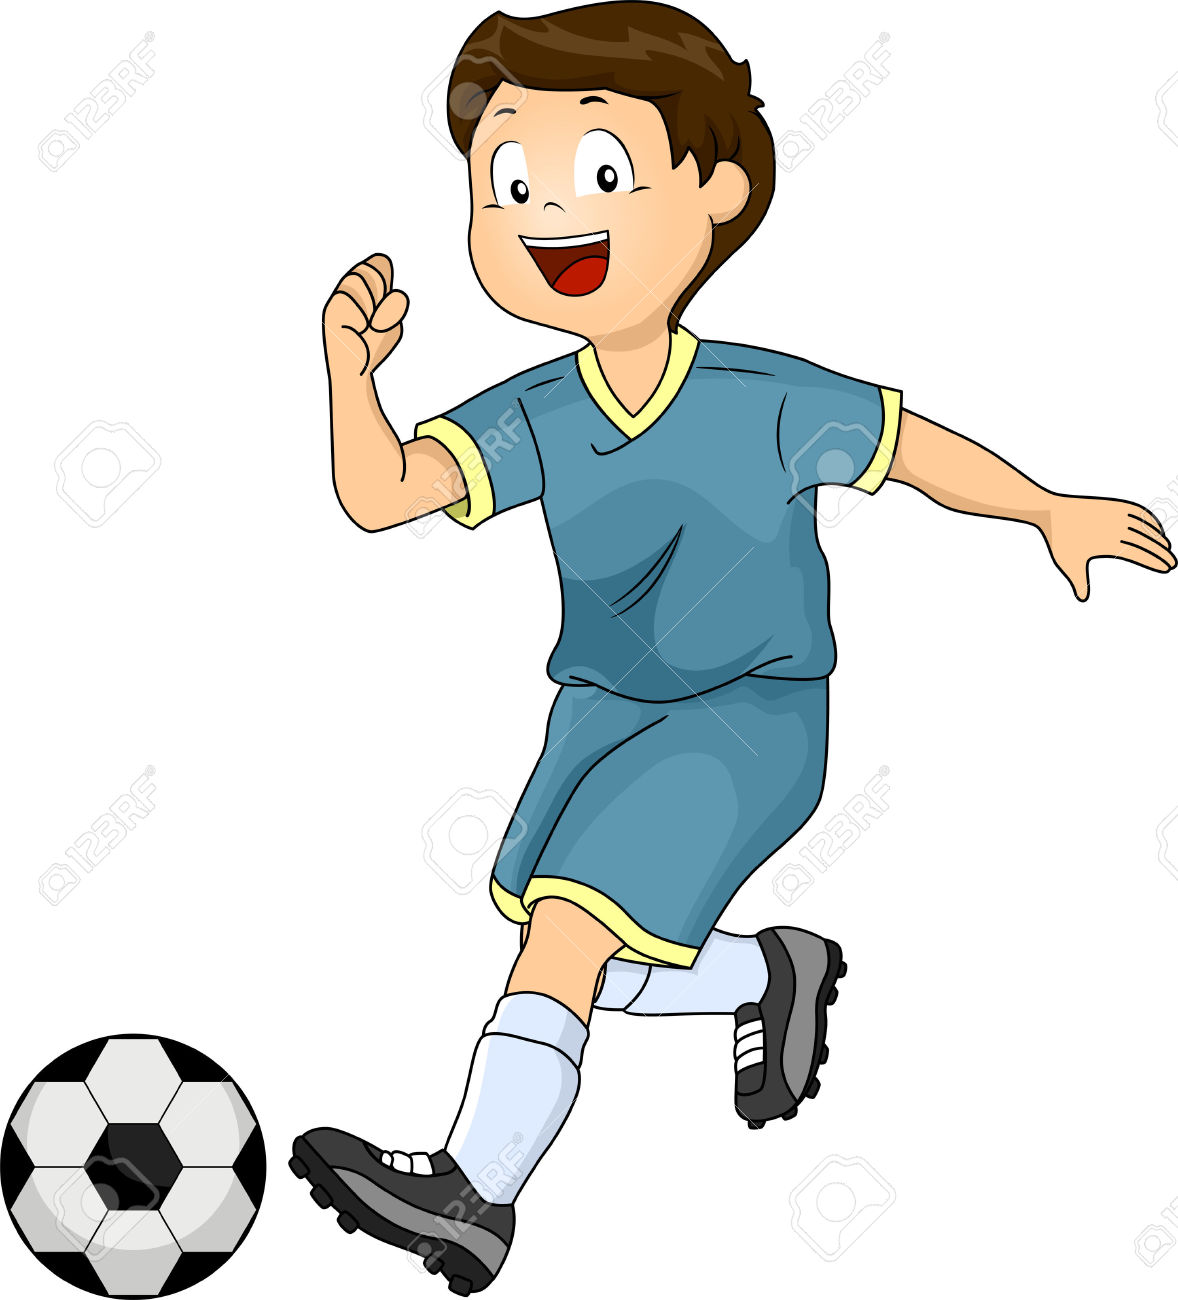 Boy Kicking A Ball Clipart.